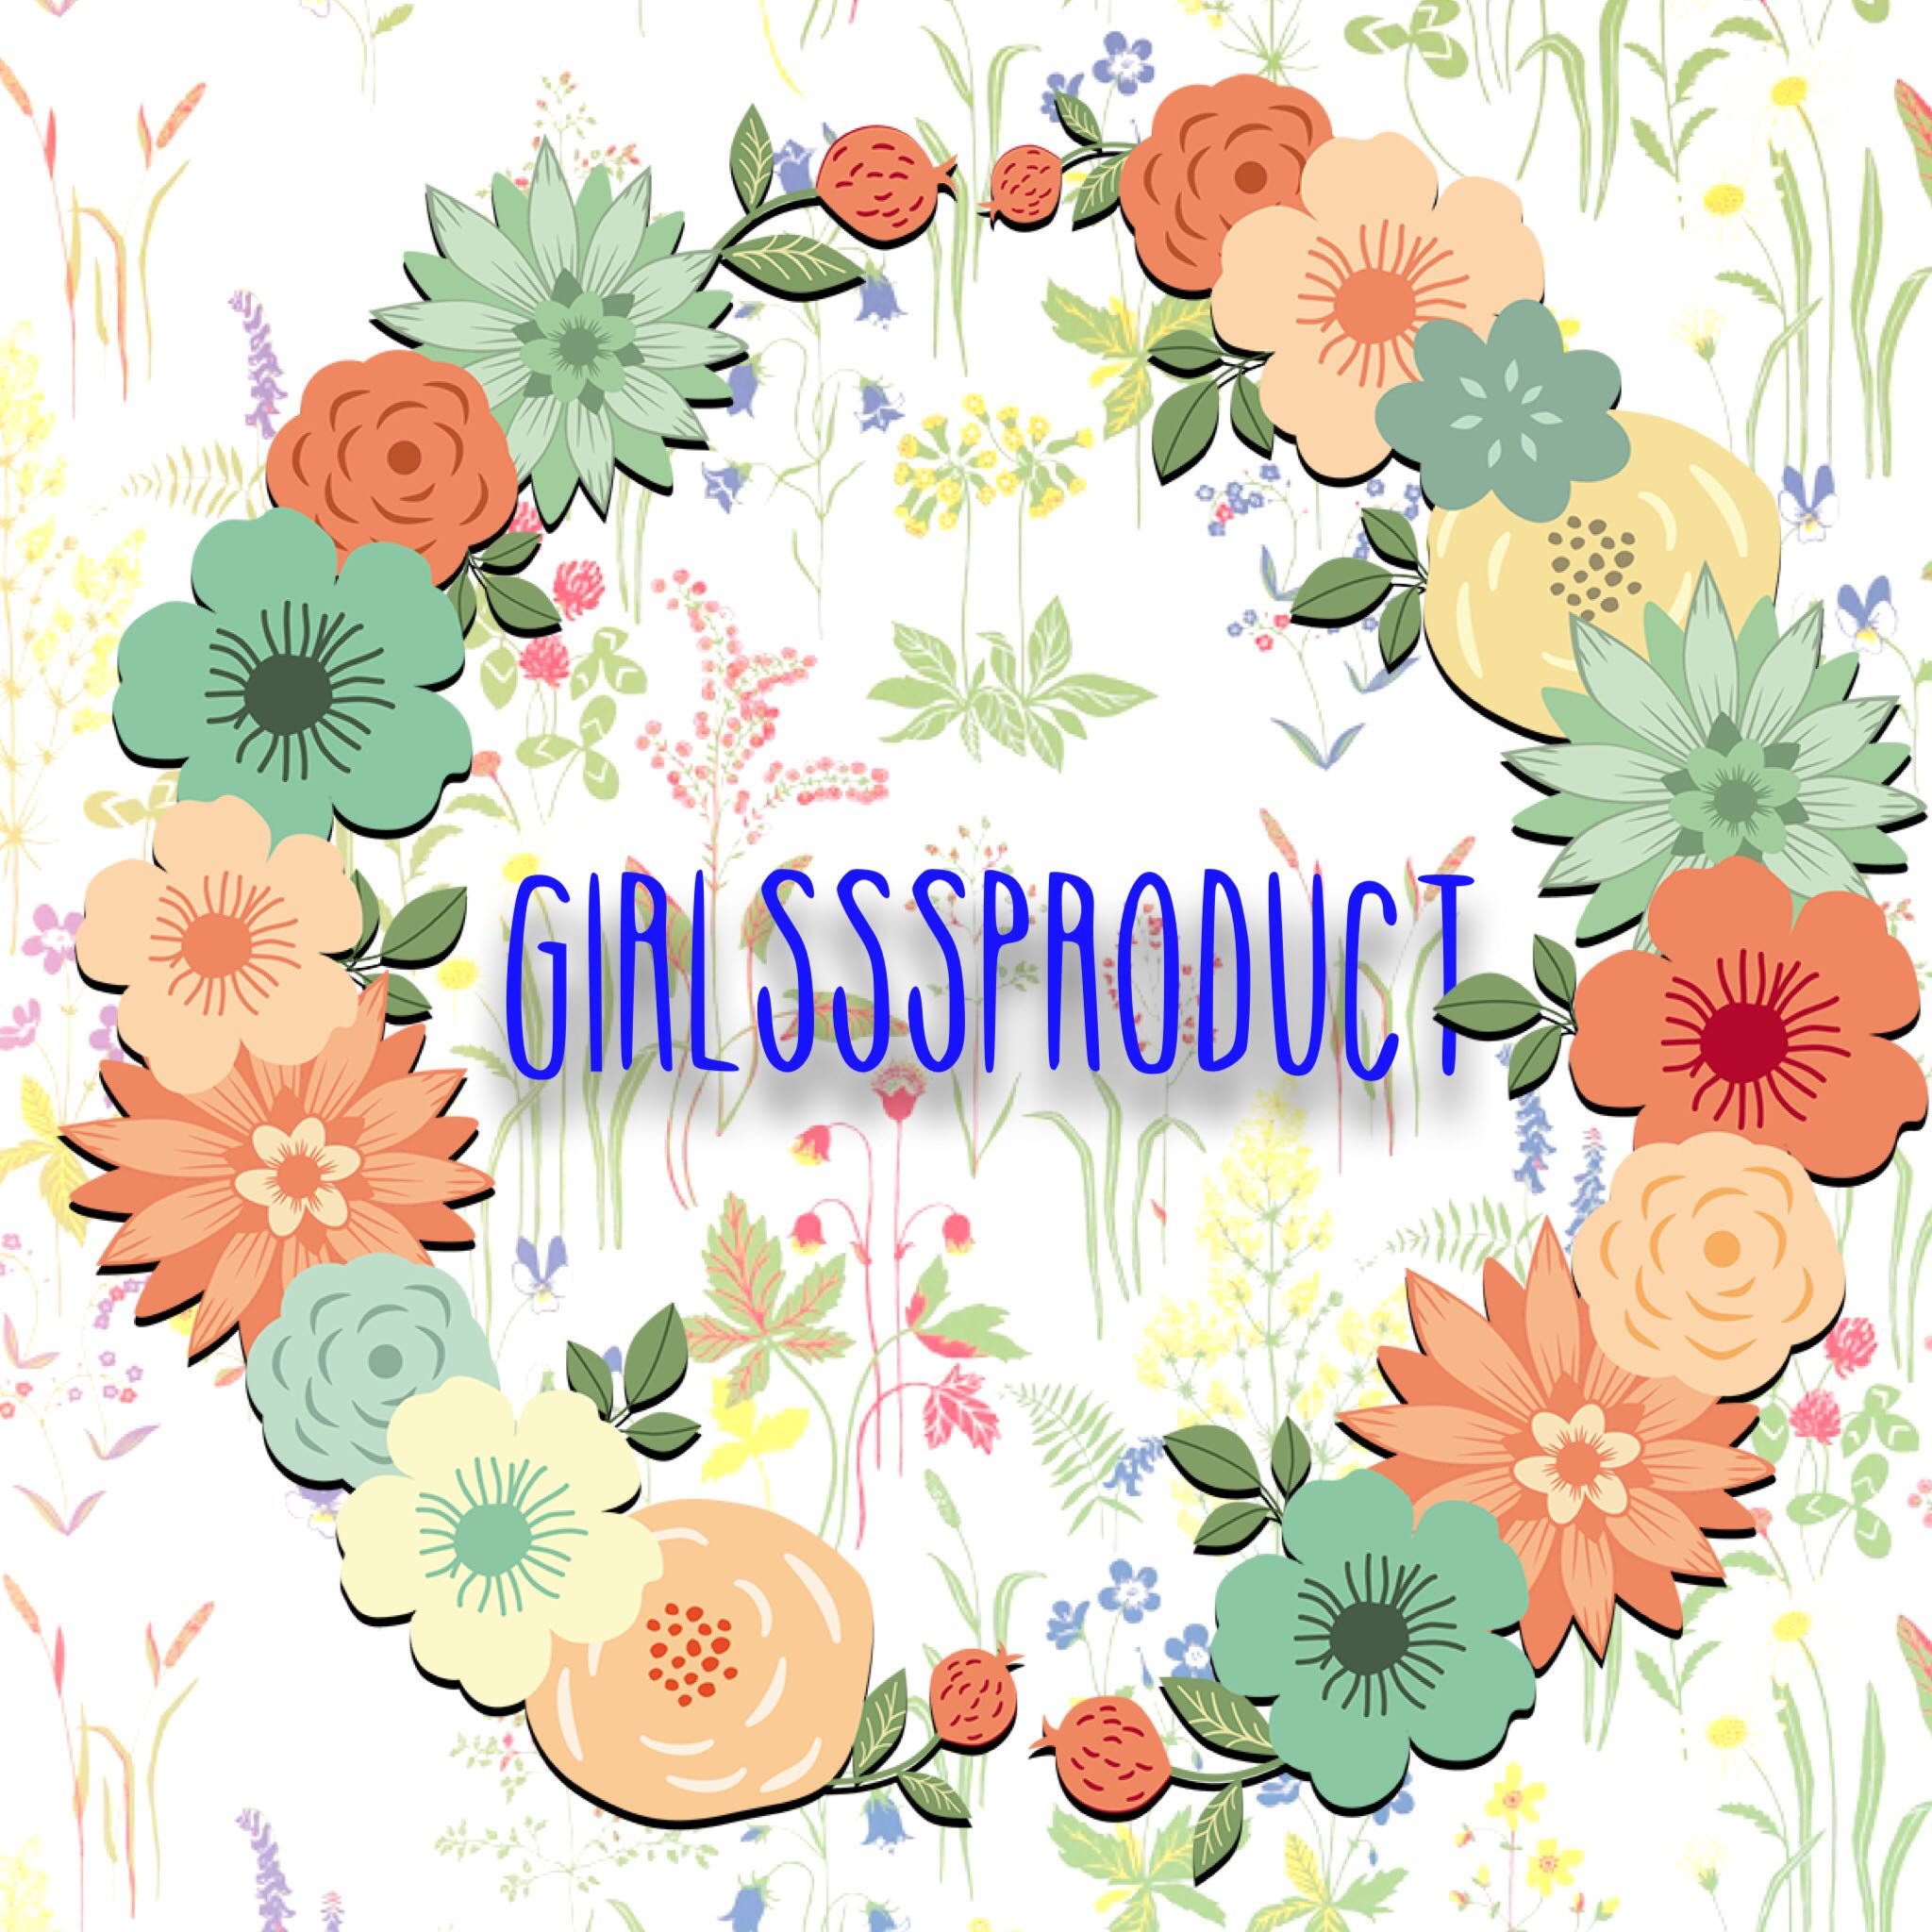 girlssproduct